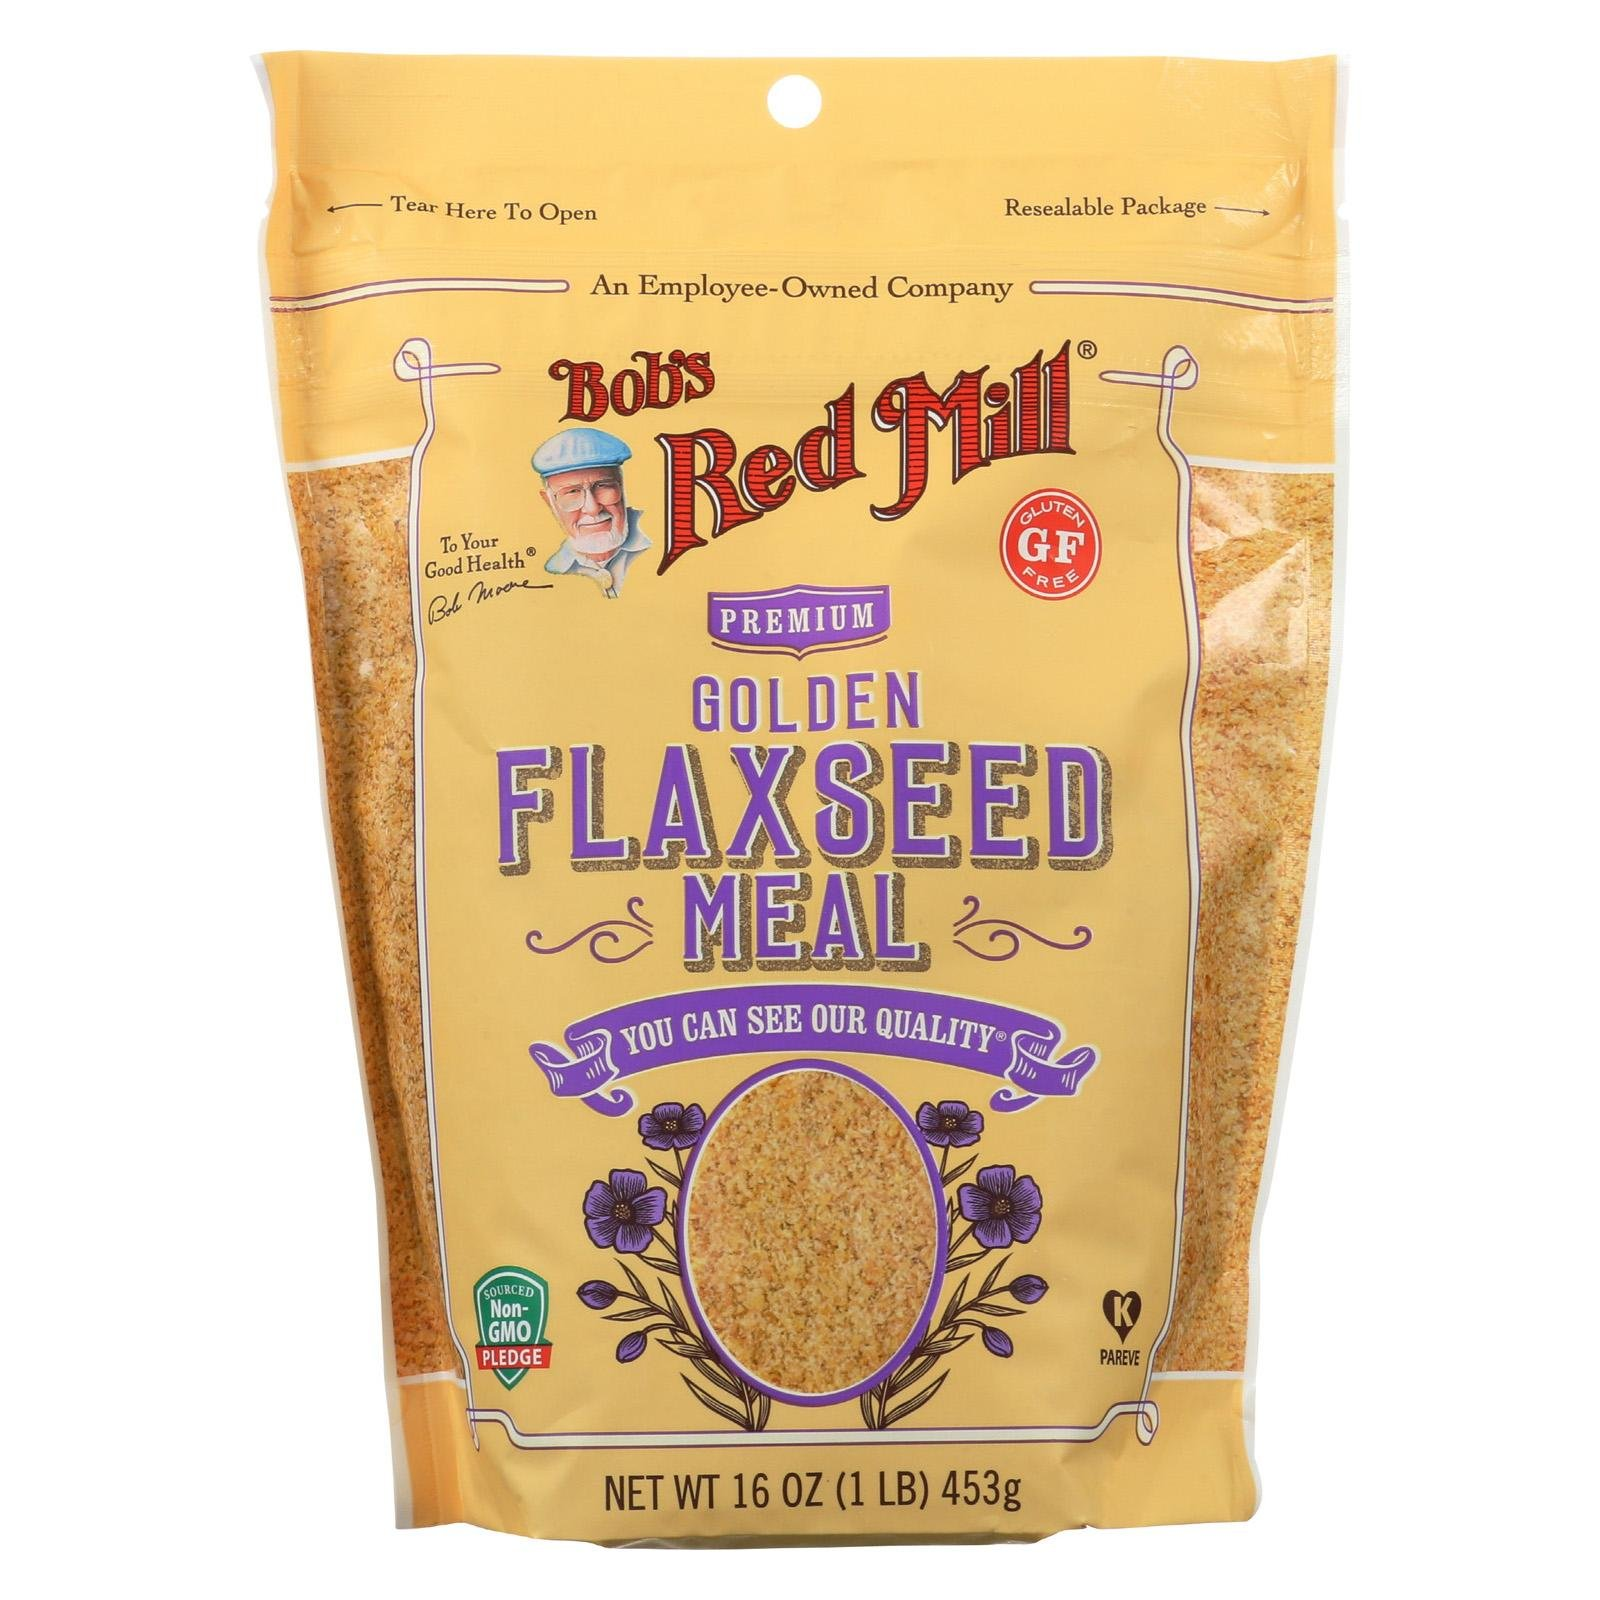 BOB'S RED MILL, Flaxseed Meal, Golden, Pack of 4, Size 16 OZ, (Gluten Free Kosher)